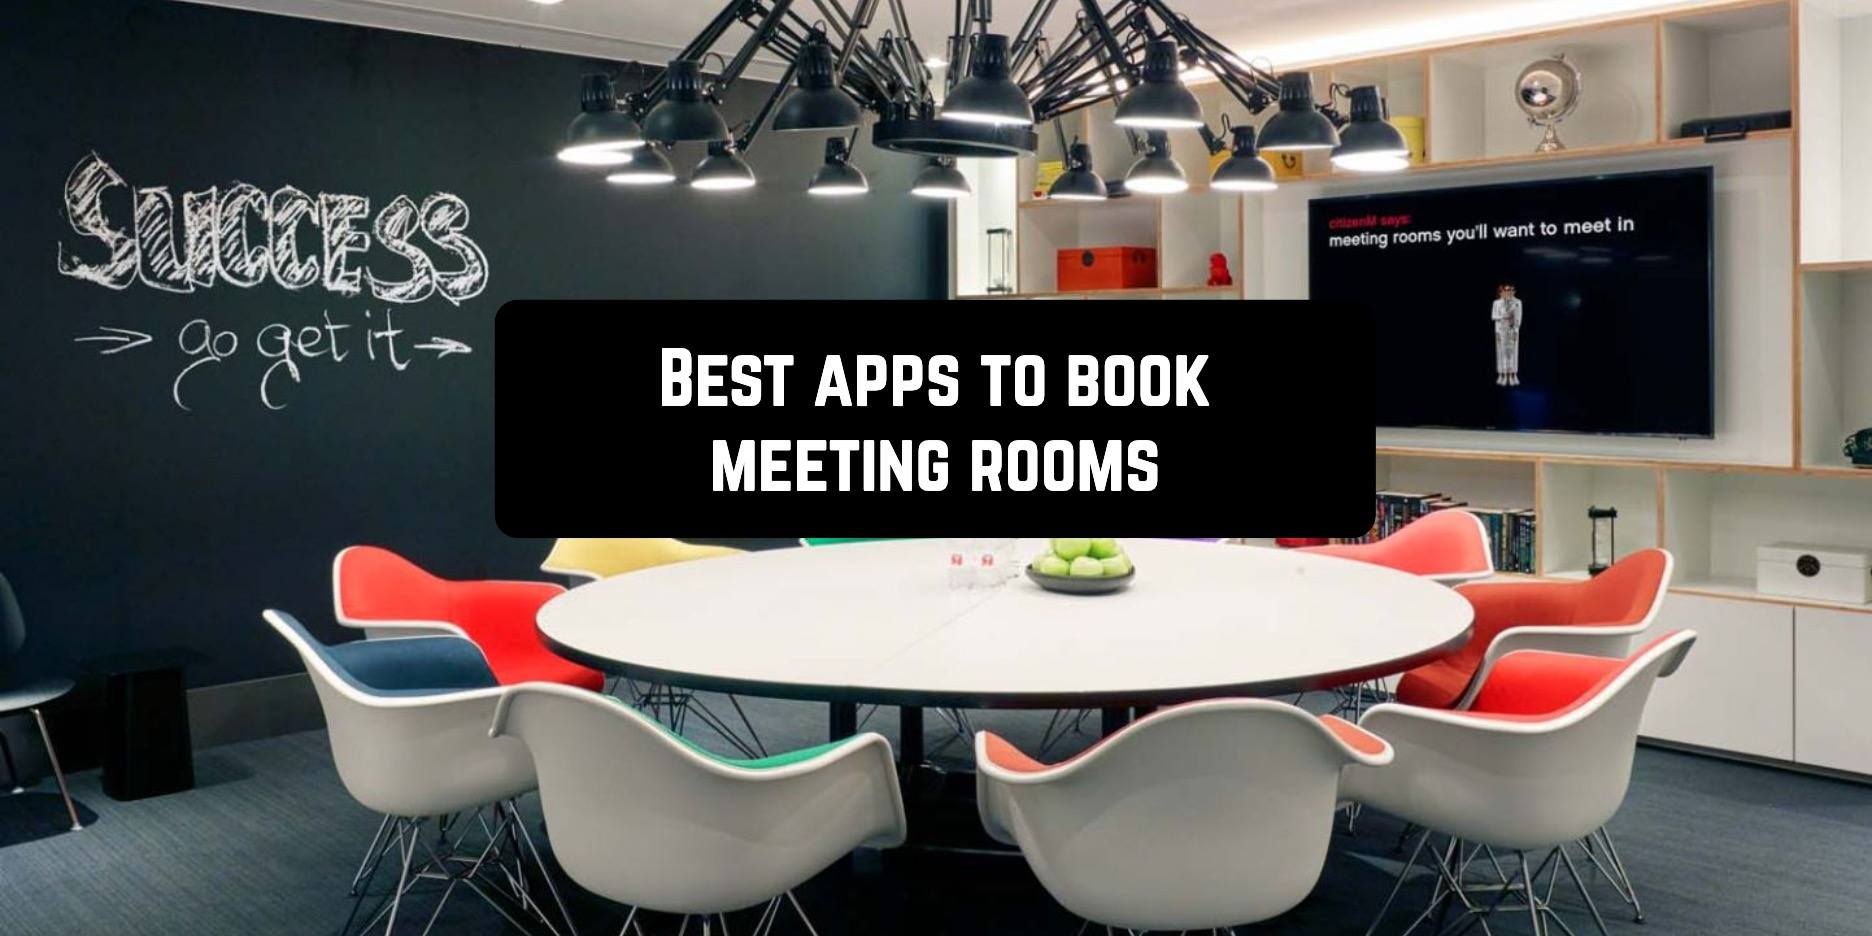 Best Android apps to book meeting rooms